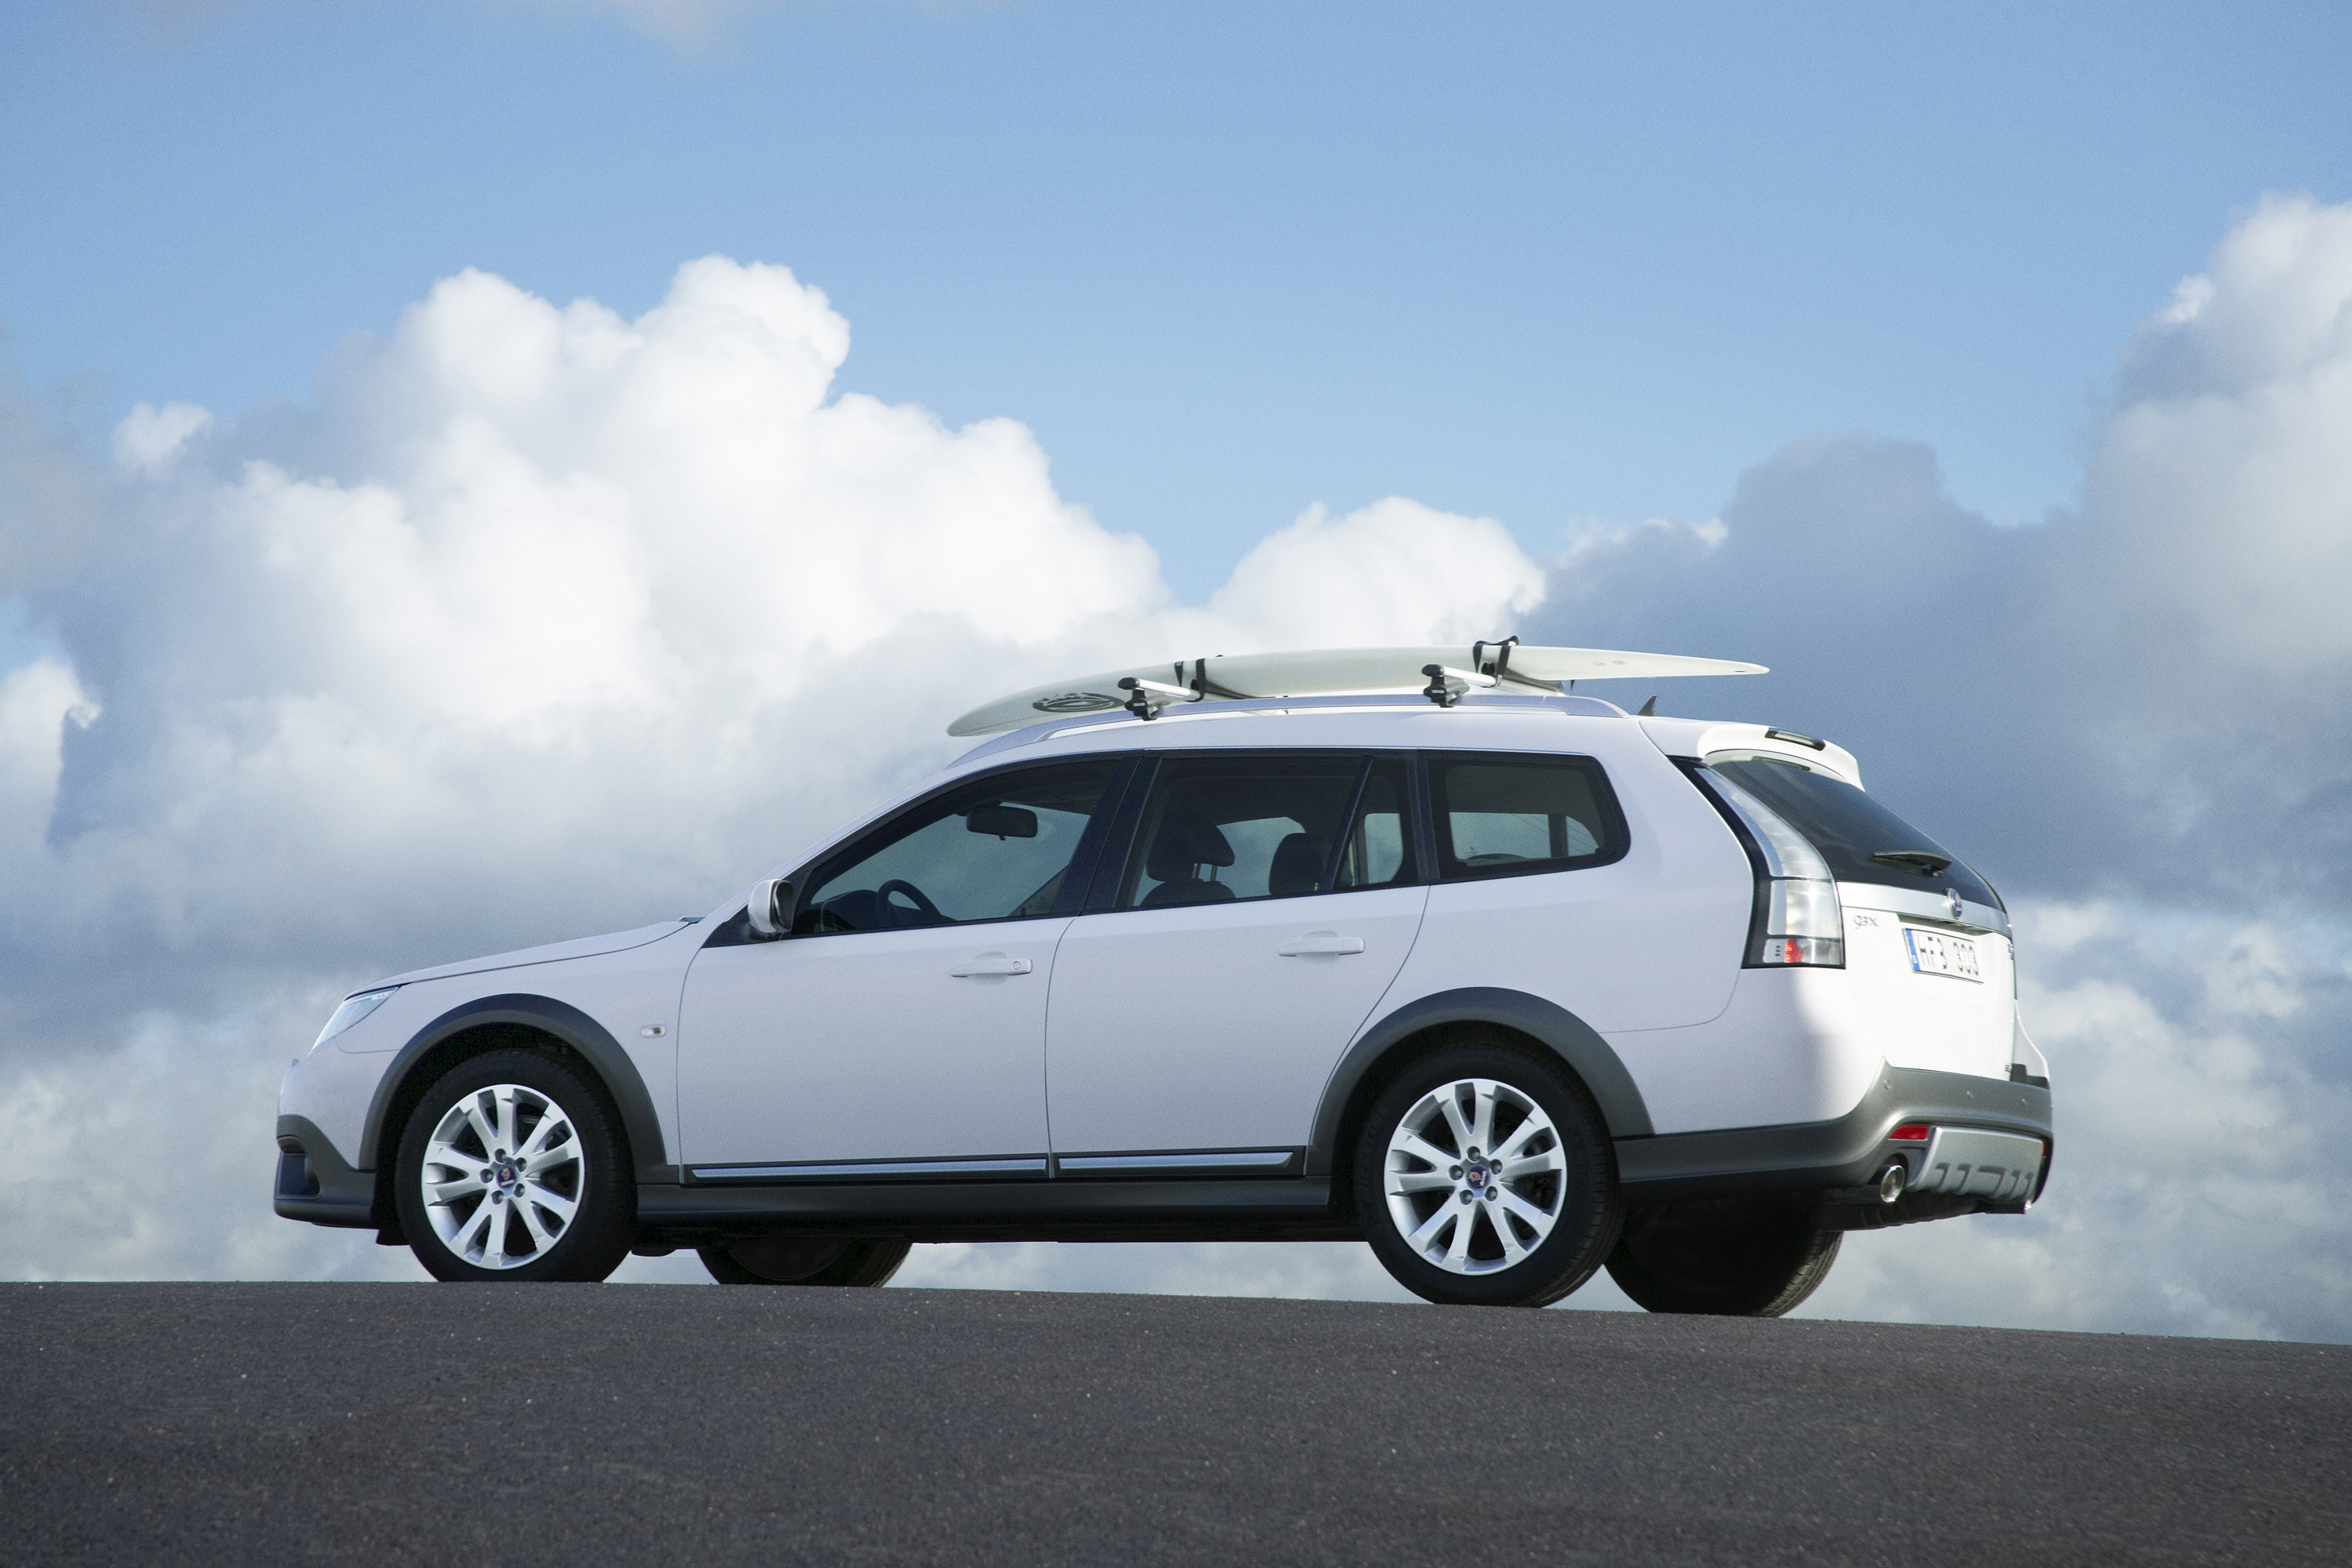 Much like other automakers raised suspension awd wagons the 9 3x is designed to give the additional clearance needed for driving on unpaved roads